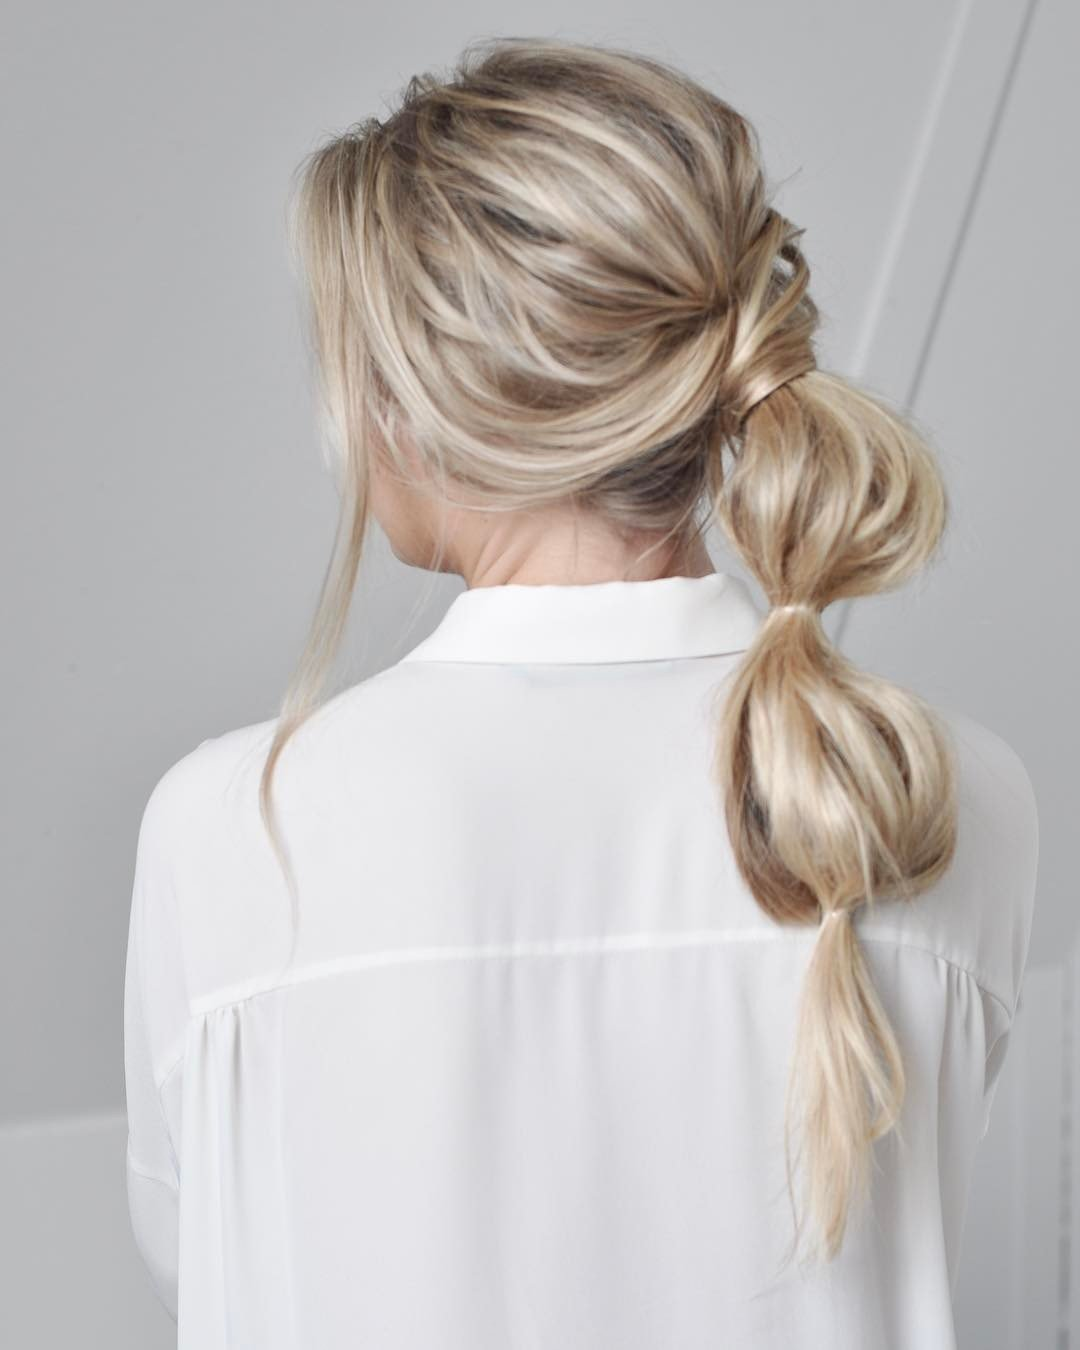 15 Vintage Ponytail Hairstyles for Women